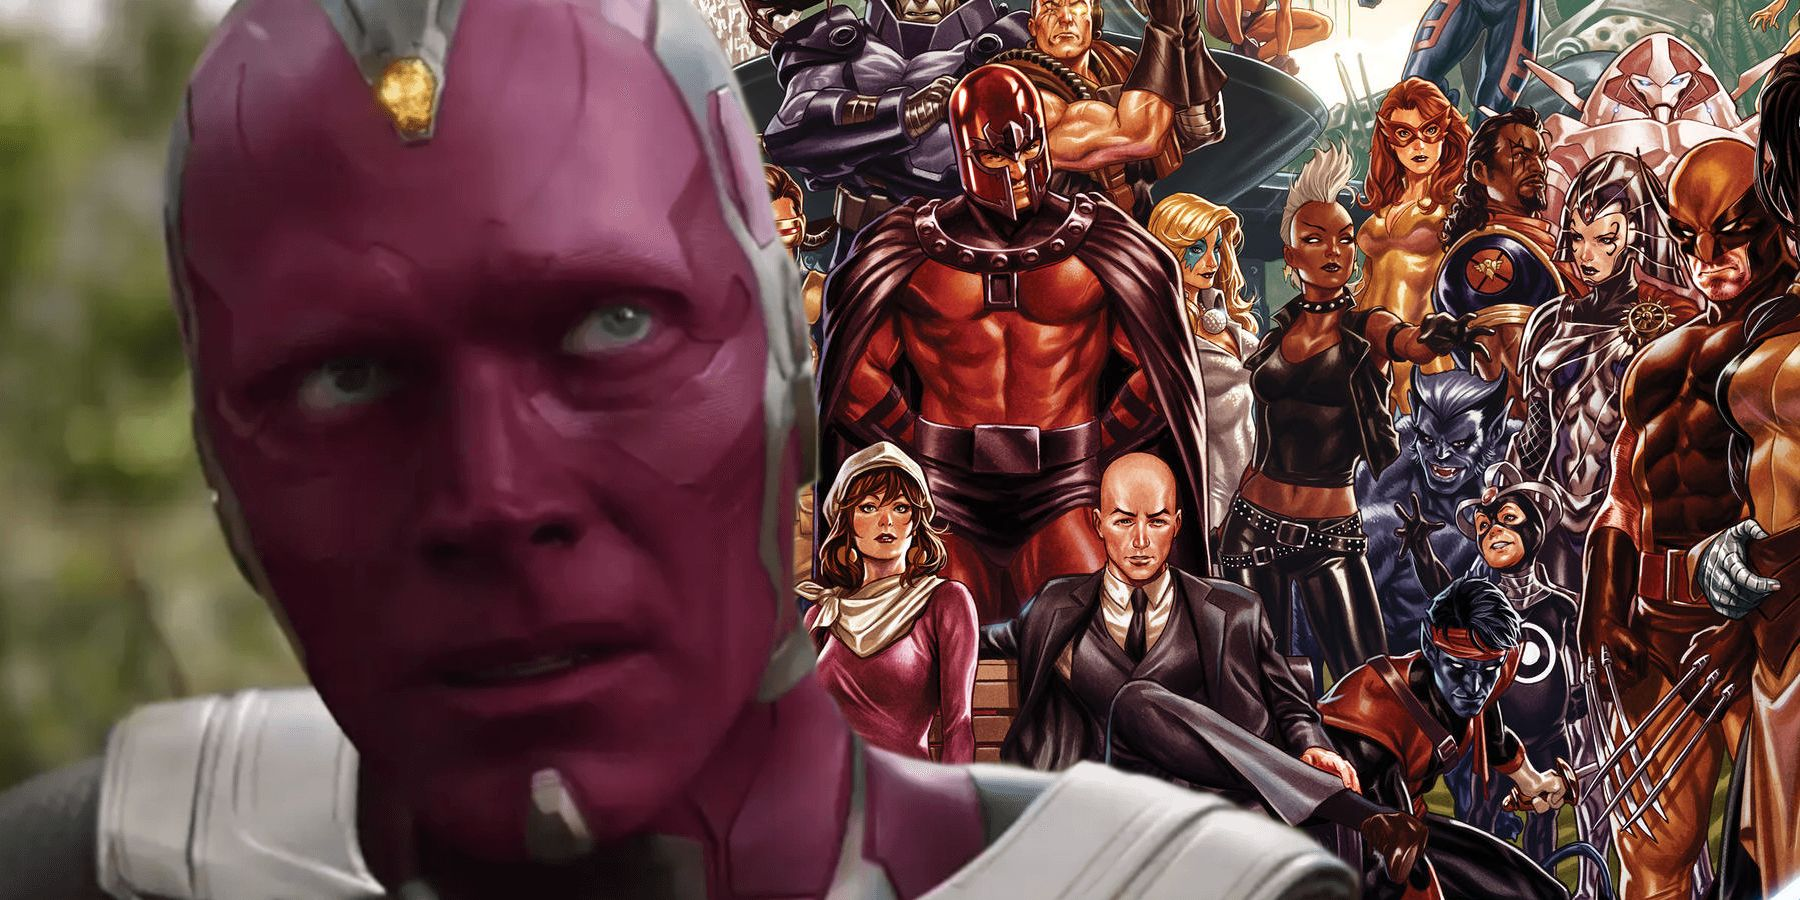 Marvel Theory: The X-Men Will Kill The Avengers' Vision